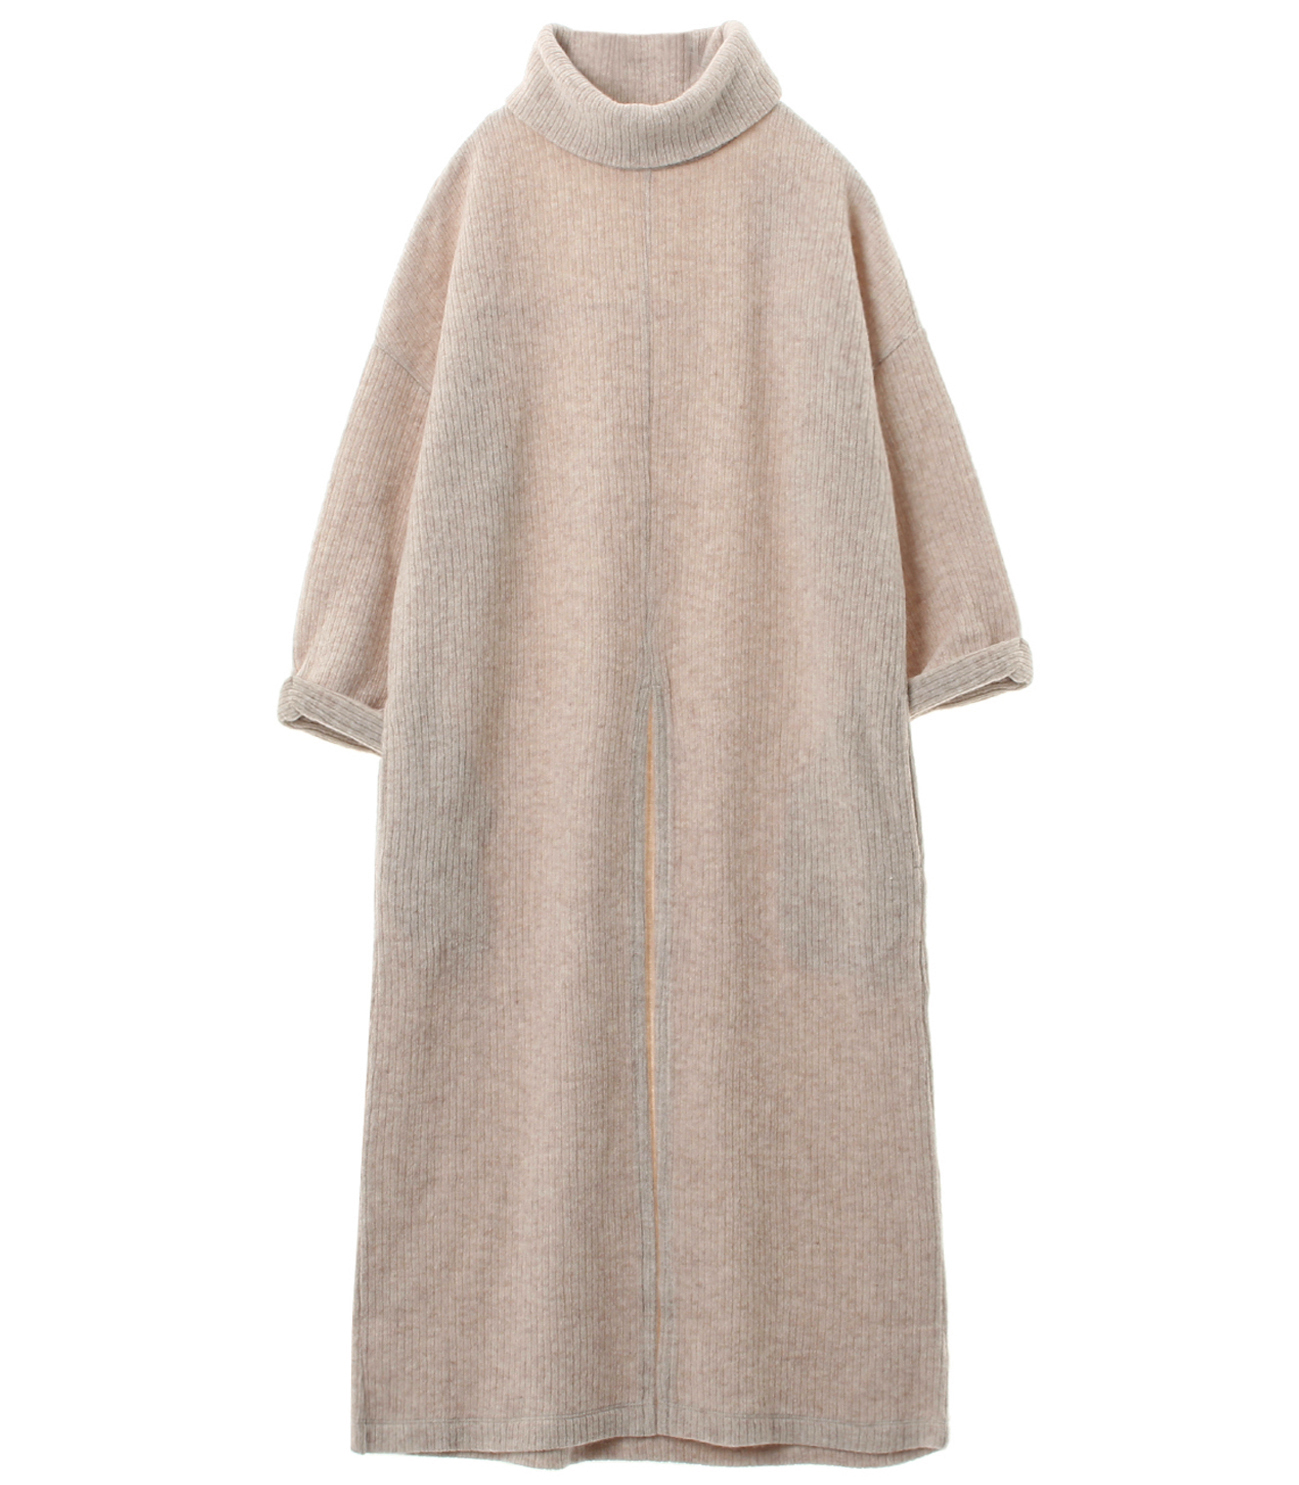 double faced rib sweater tunic t 詳細画像 heathered oatmeal 1